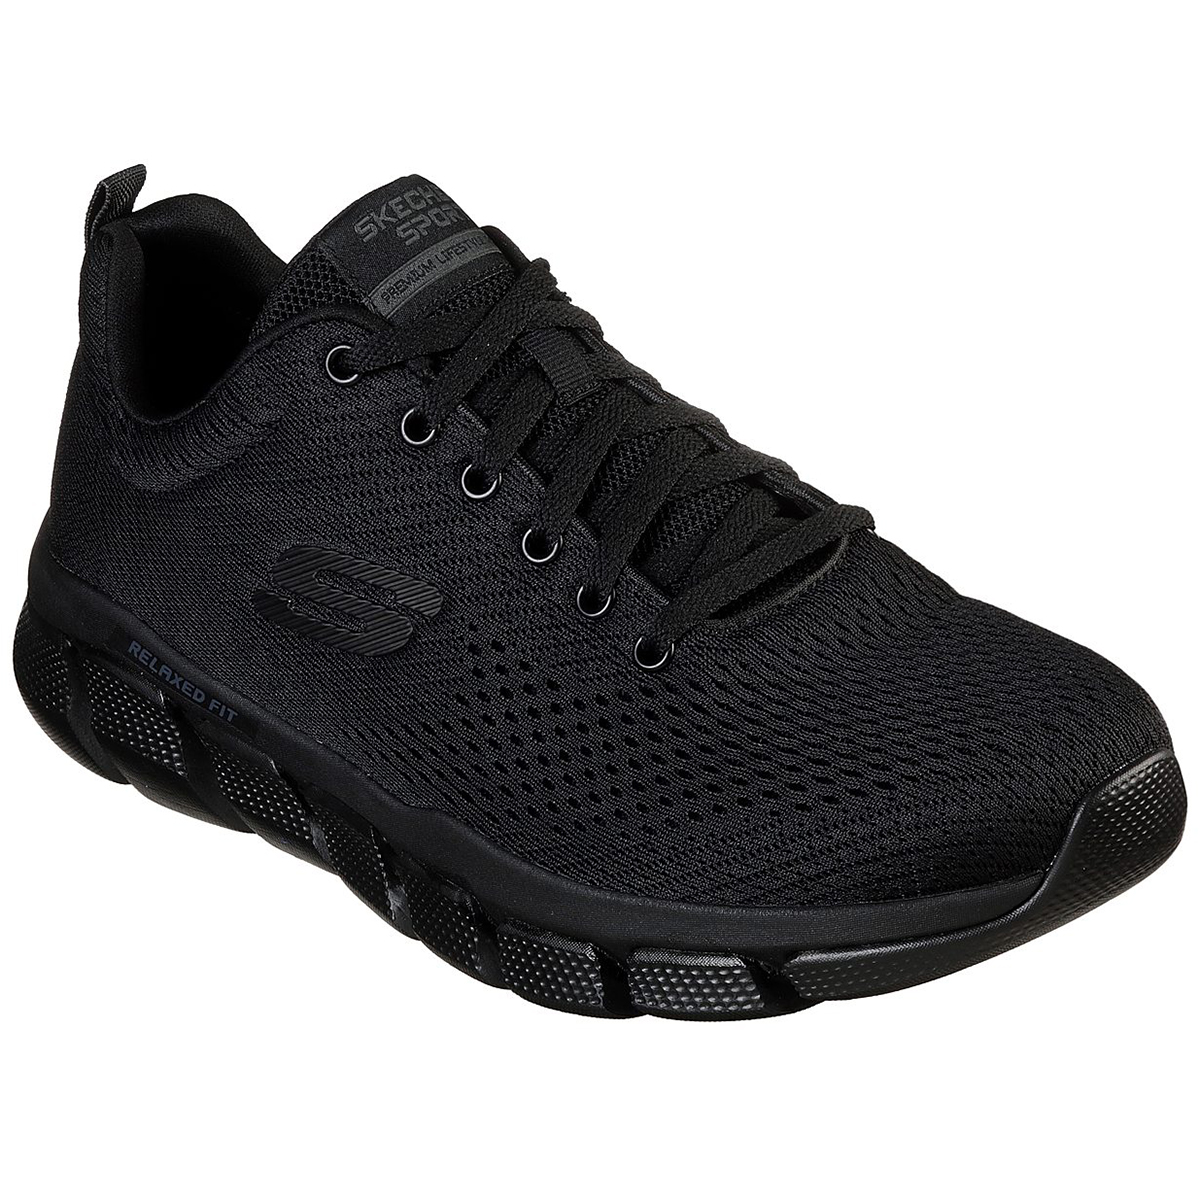 Skechers Men's Relaxed Fit Skech-Flex 3.0 Verko Lace Up Sneakers, Wide - Black, 11